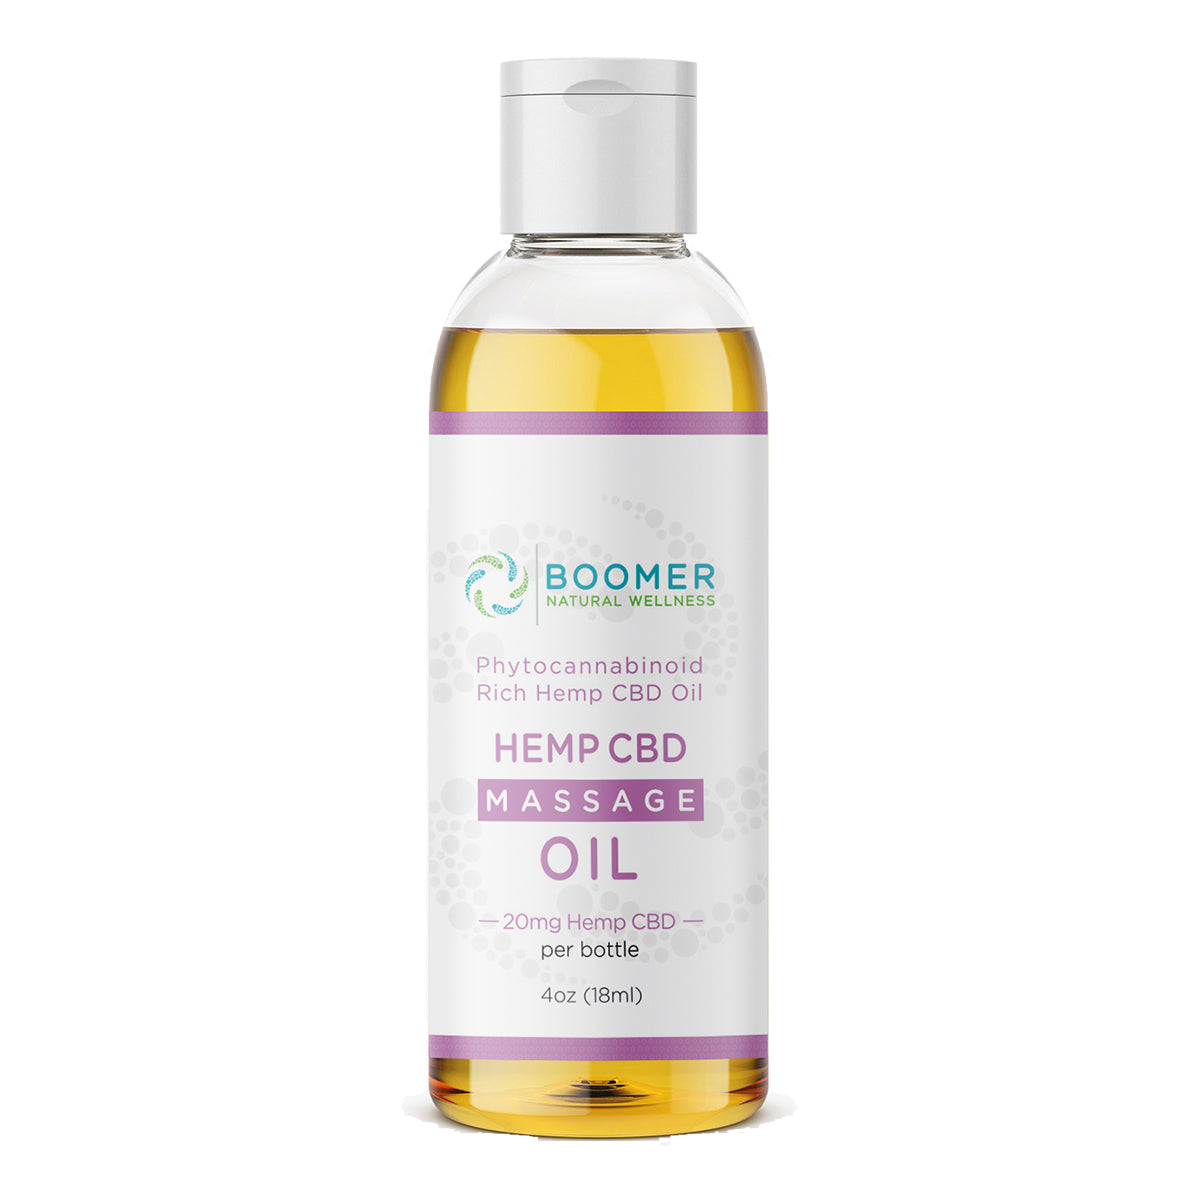 Hemp CBD Massage Oil